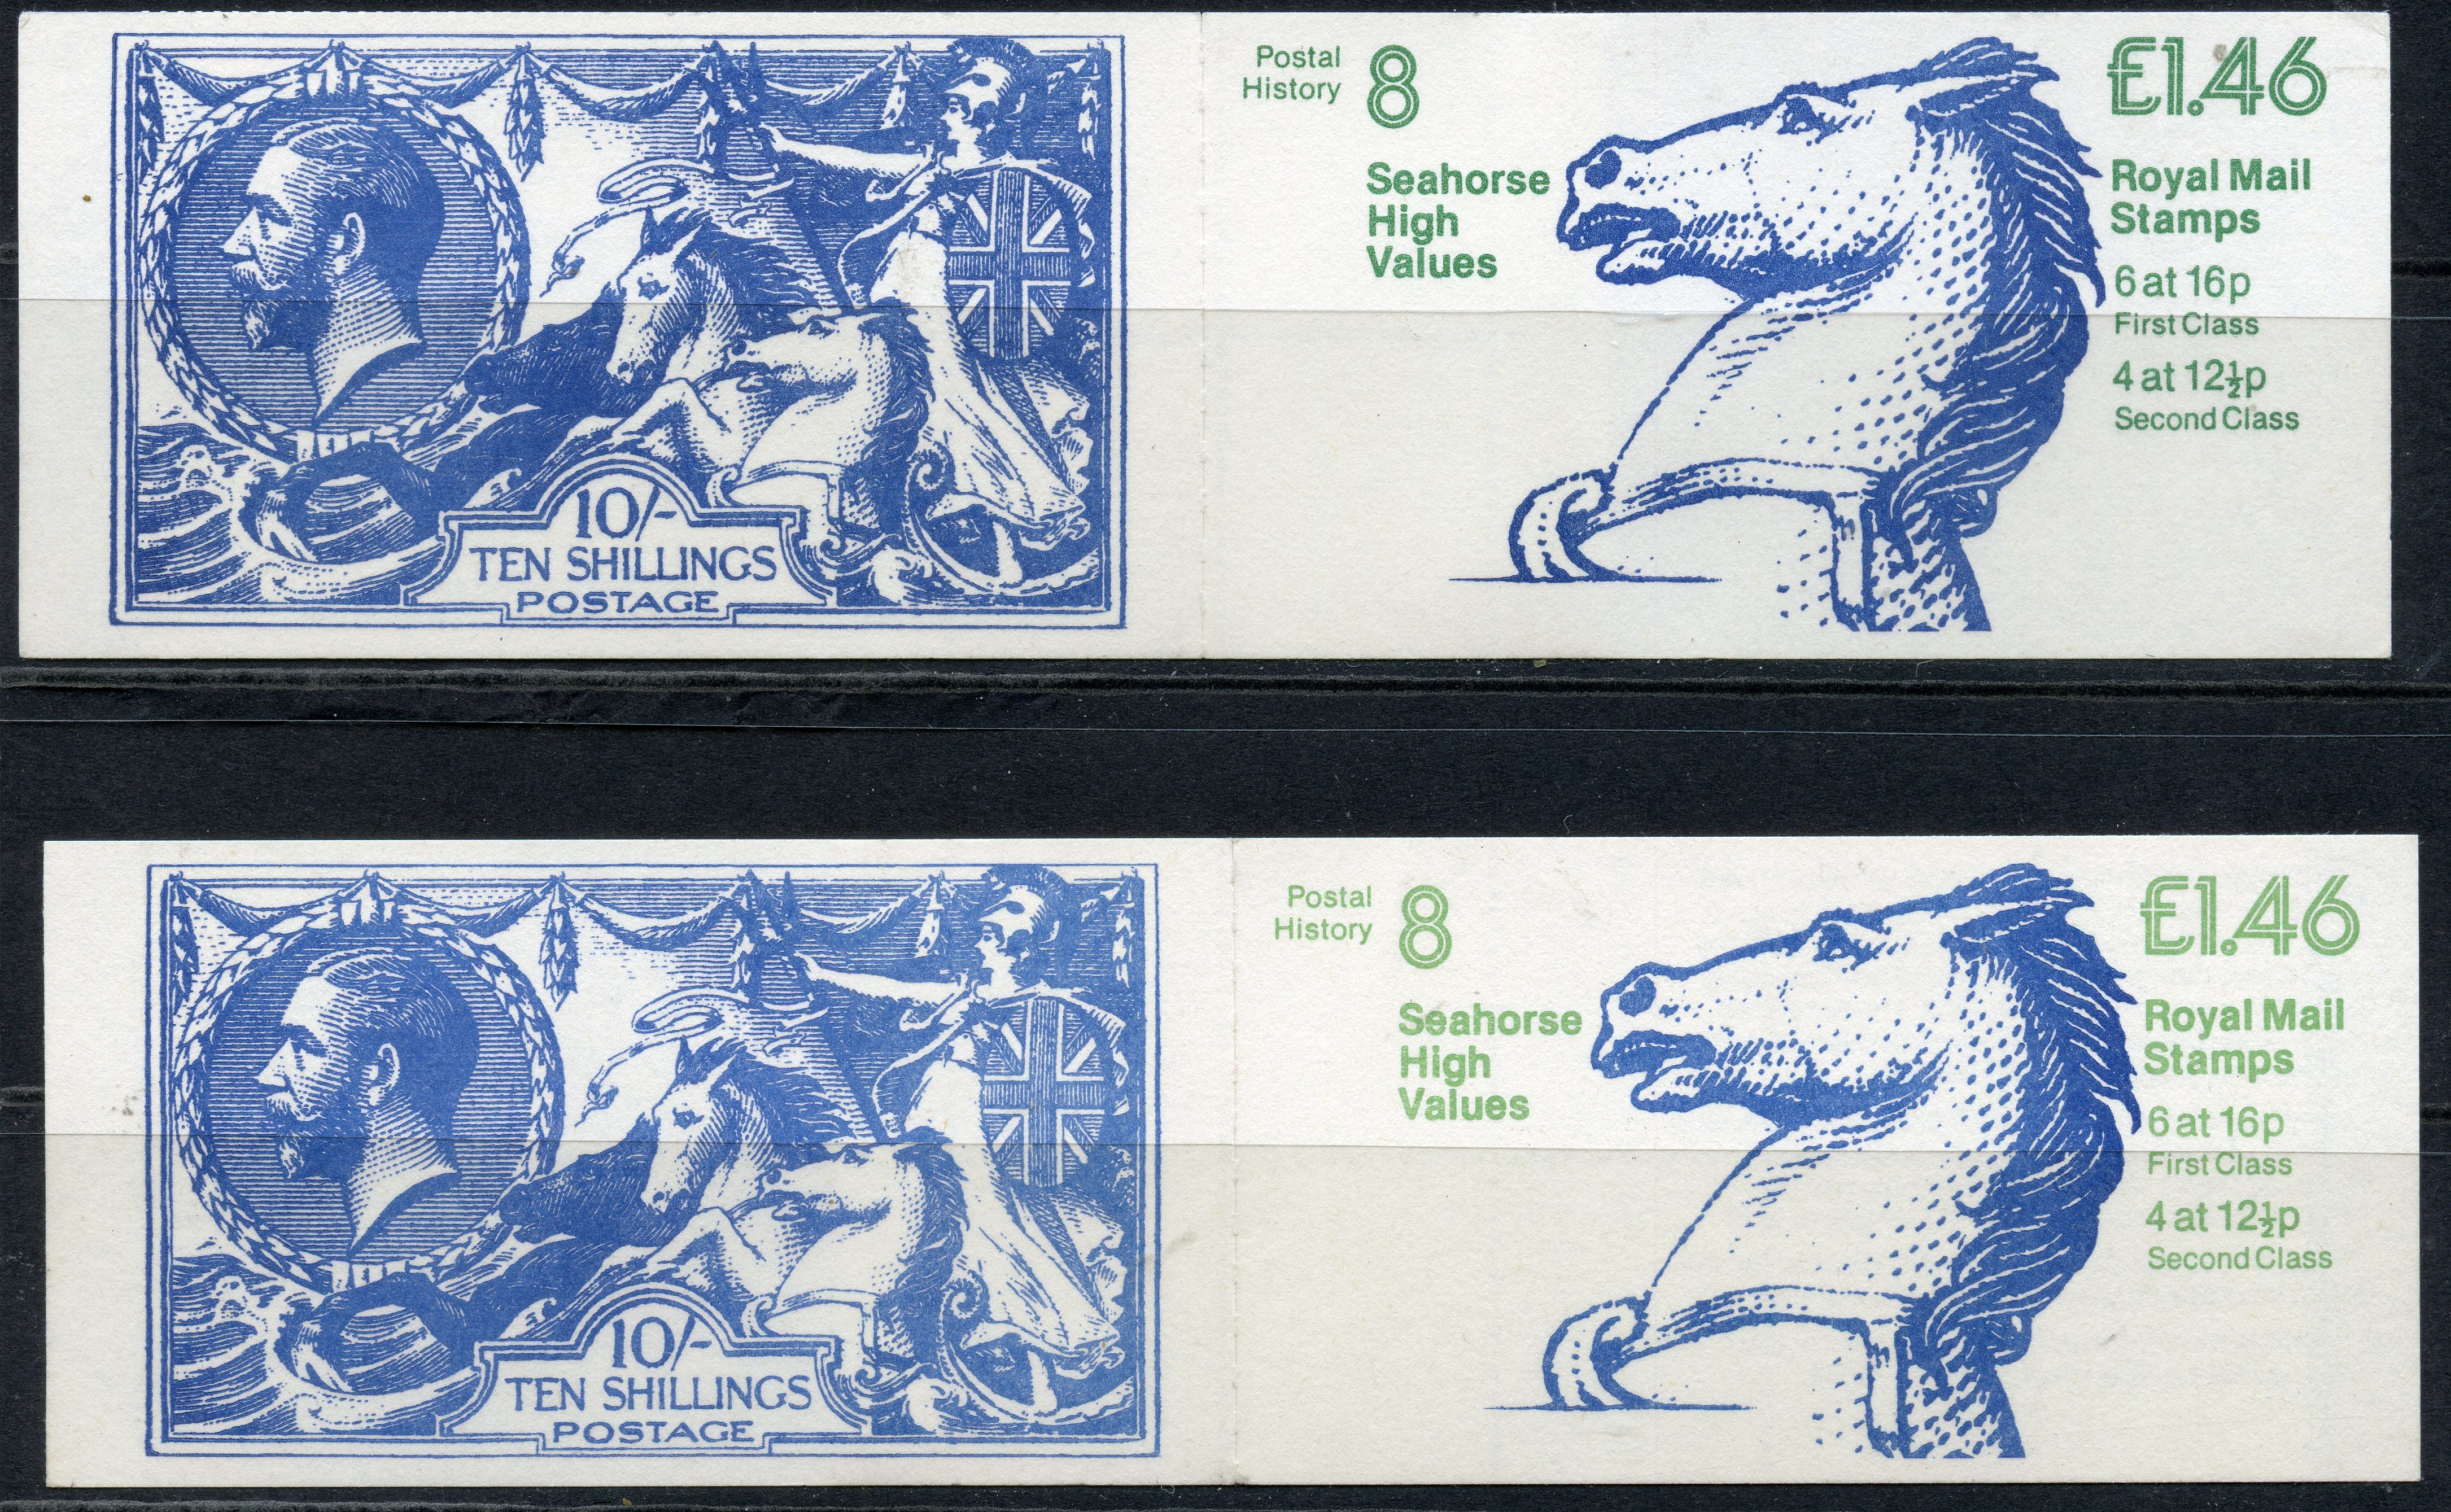 BOOKLETS 1983 £1.46 seahorse corrected rate both selvedge at left and right. SG F01a A, B. Cat £63.